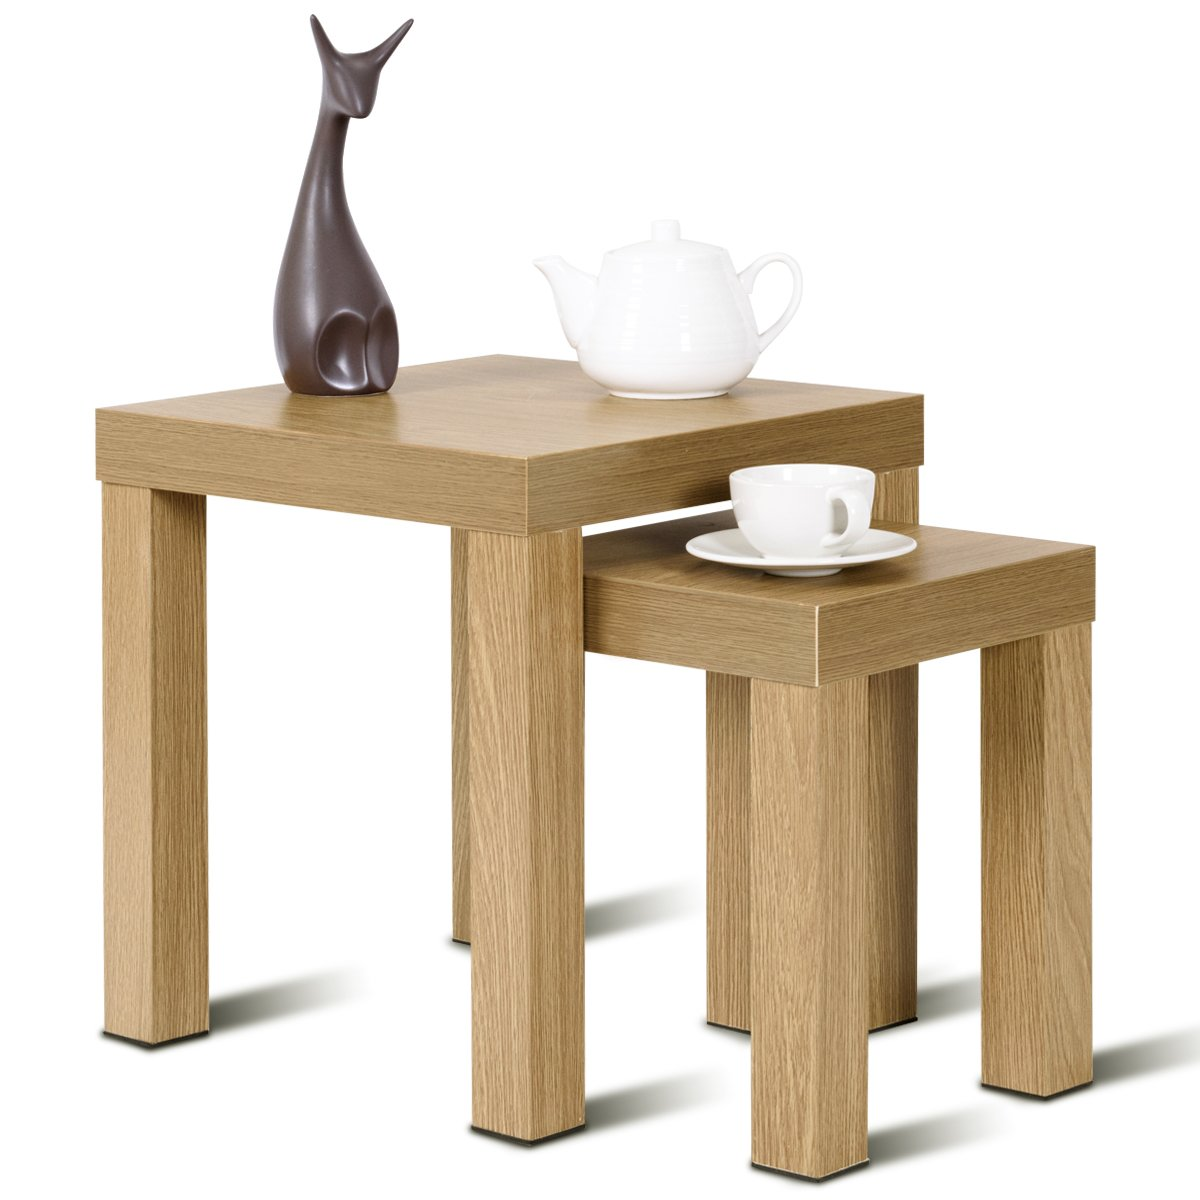 Giantex Accent Nesting End Table Set Wood Color Home Kitchen Decor Casual Style Living Room Furniture Sofa Side Nesting Coffee Tables, 2 PCS (Hollow Core Slab) by Giantex